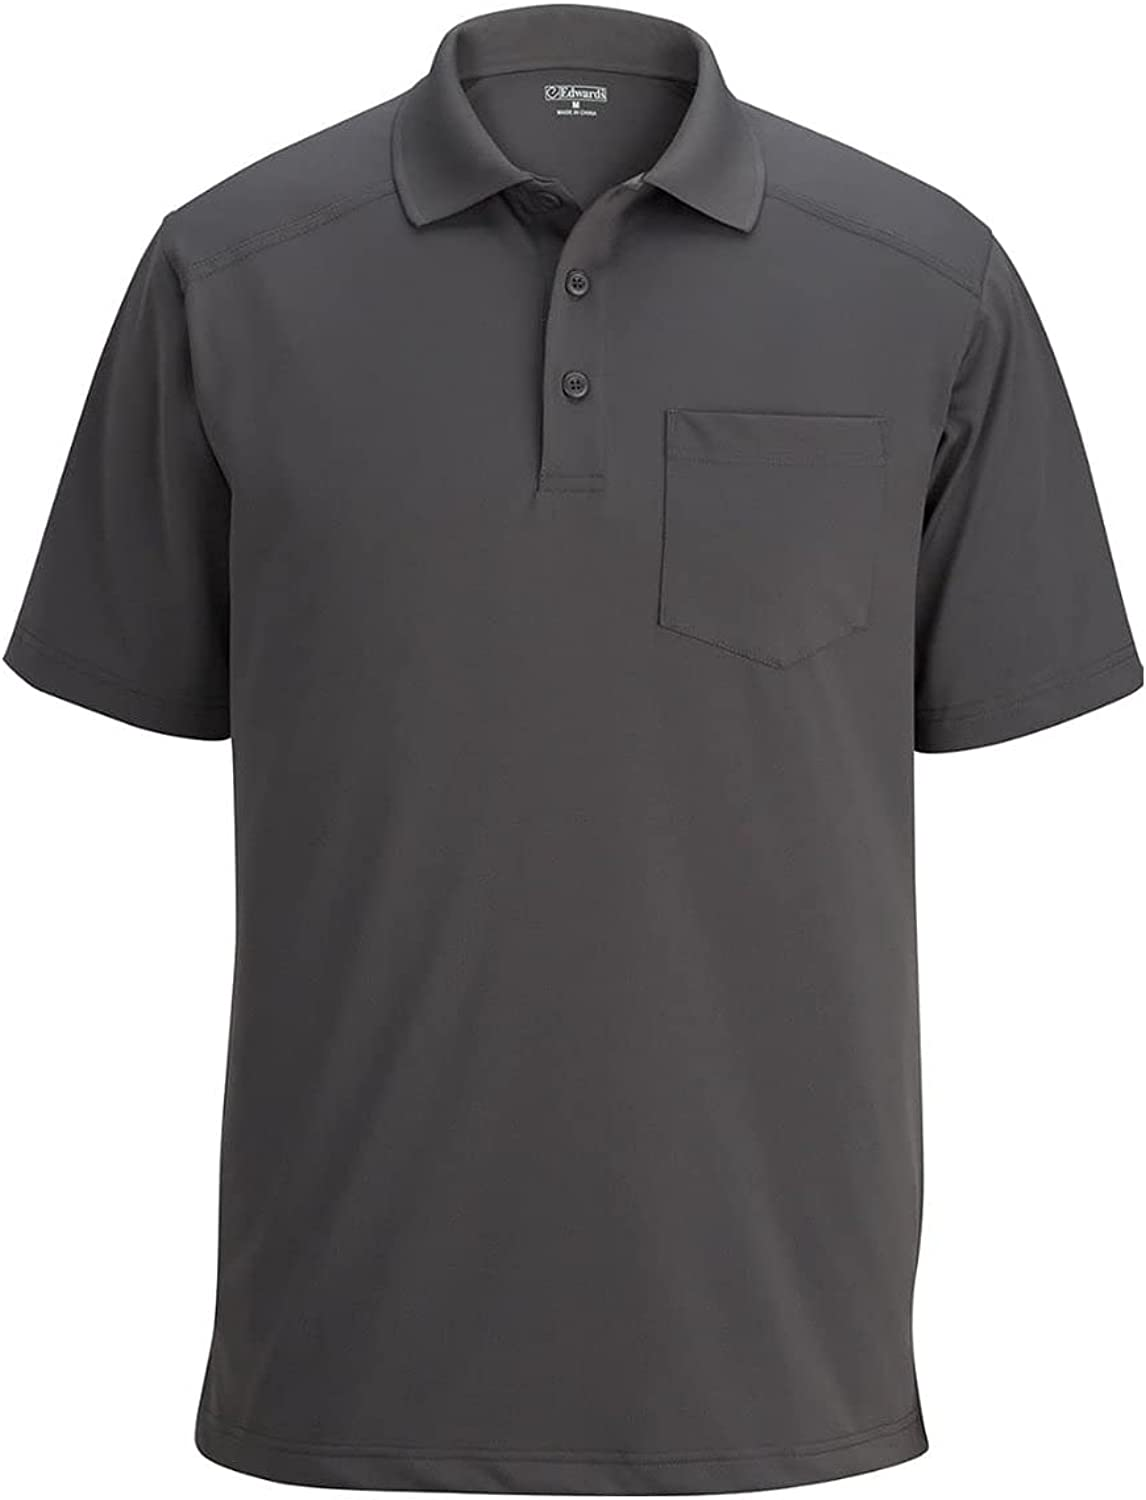 Edwards Snag Proof Polo with Pockets